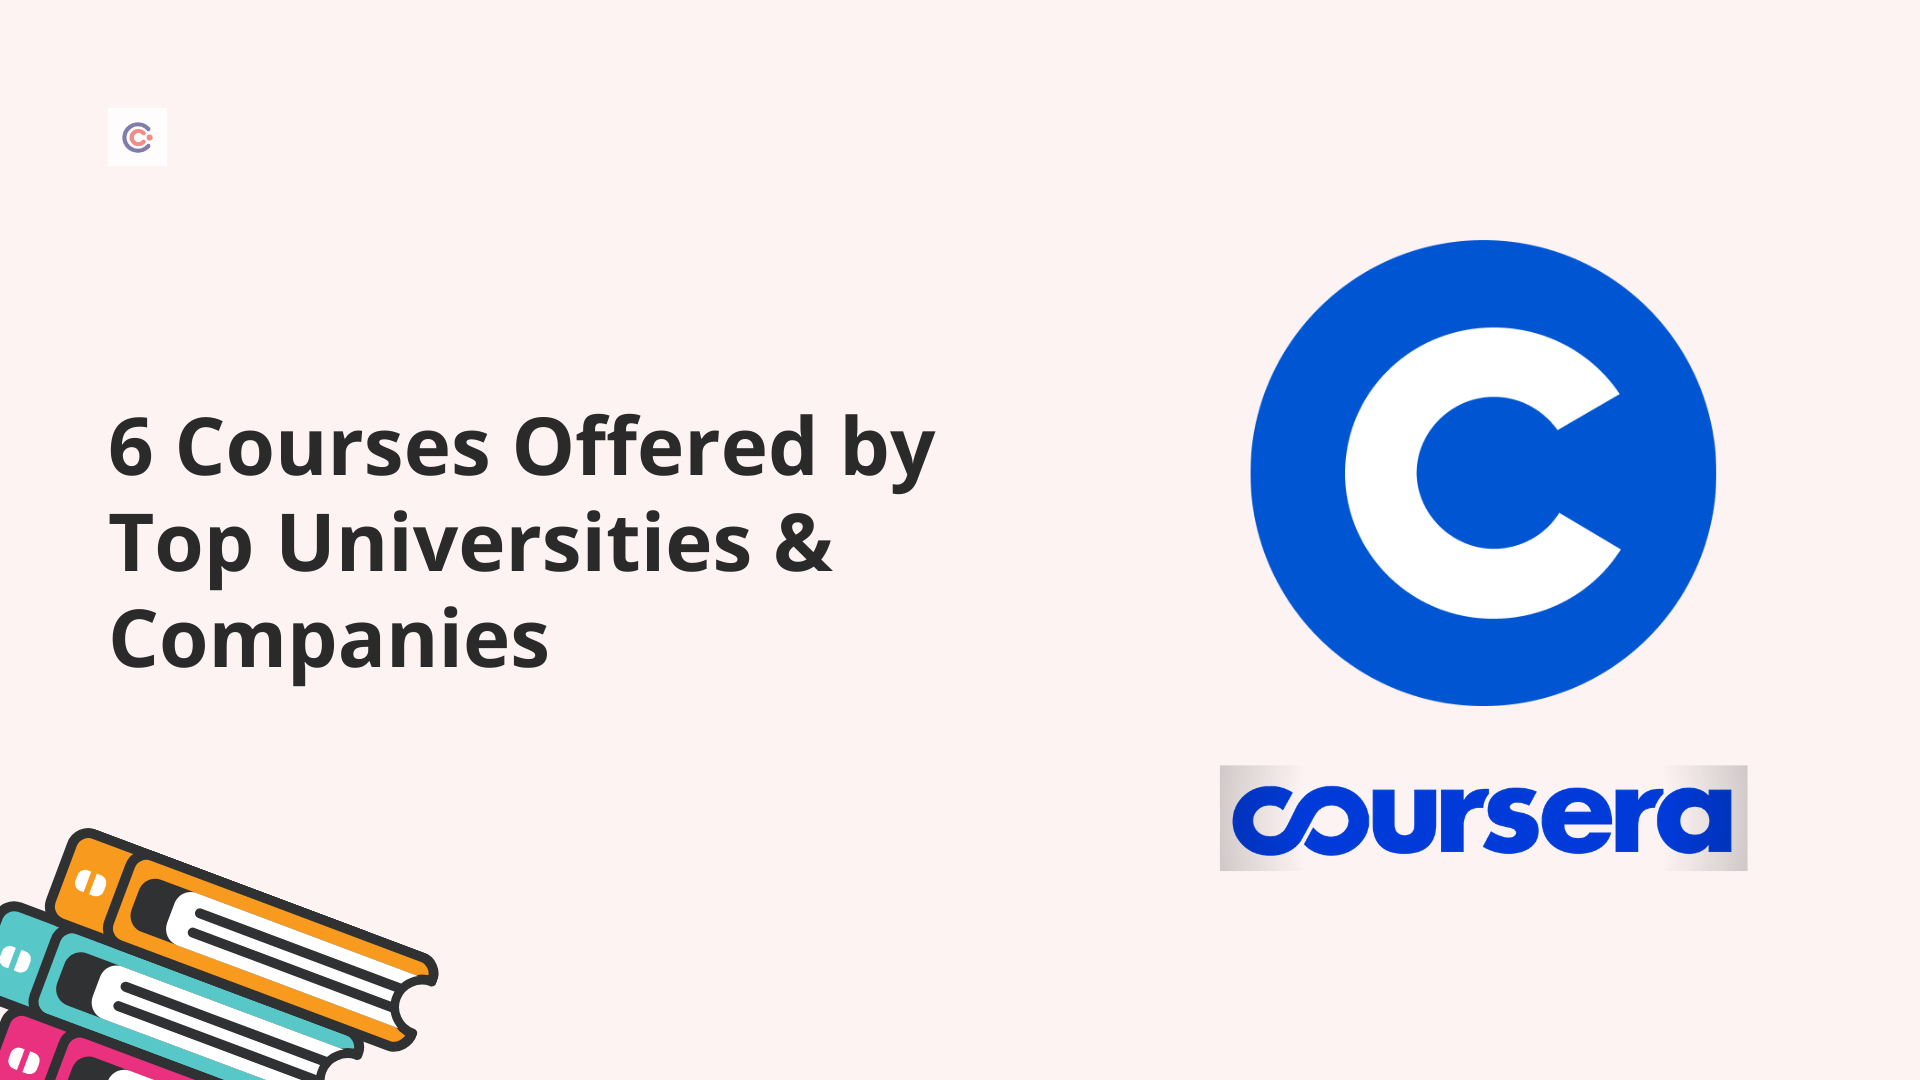 6 Courses You Can Take From Top Universities and Companies for $59